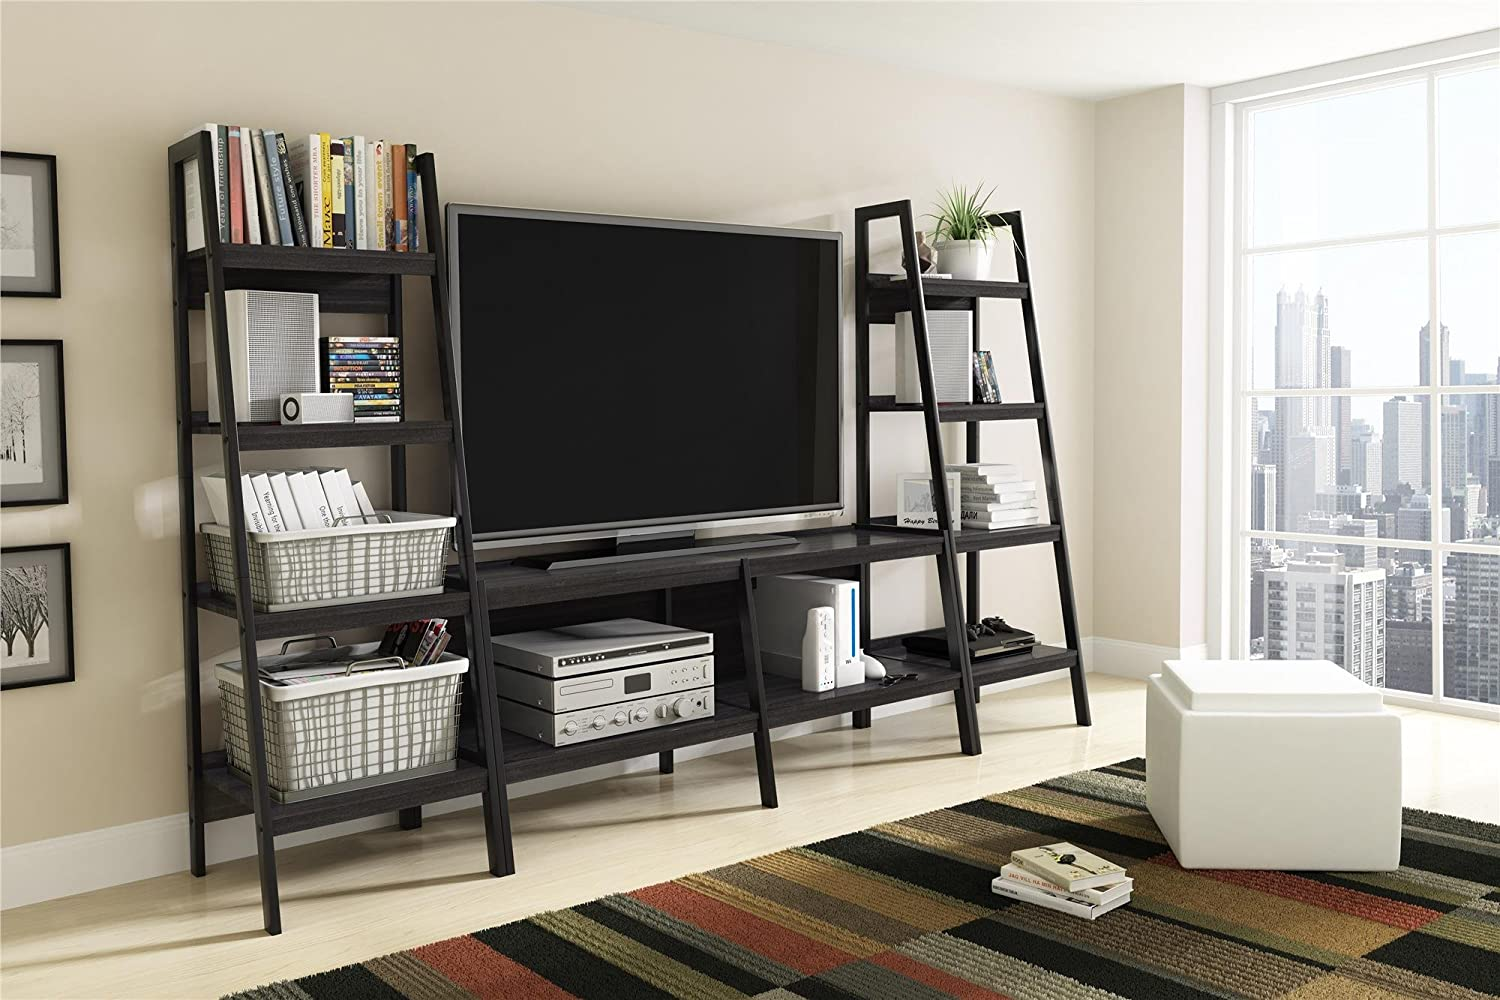 tv stands flat screens small cherry amazon com ameriwood home lawrence 4 shelf ladder bookcase bundle black kitchen dining